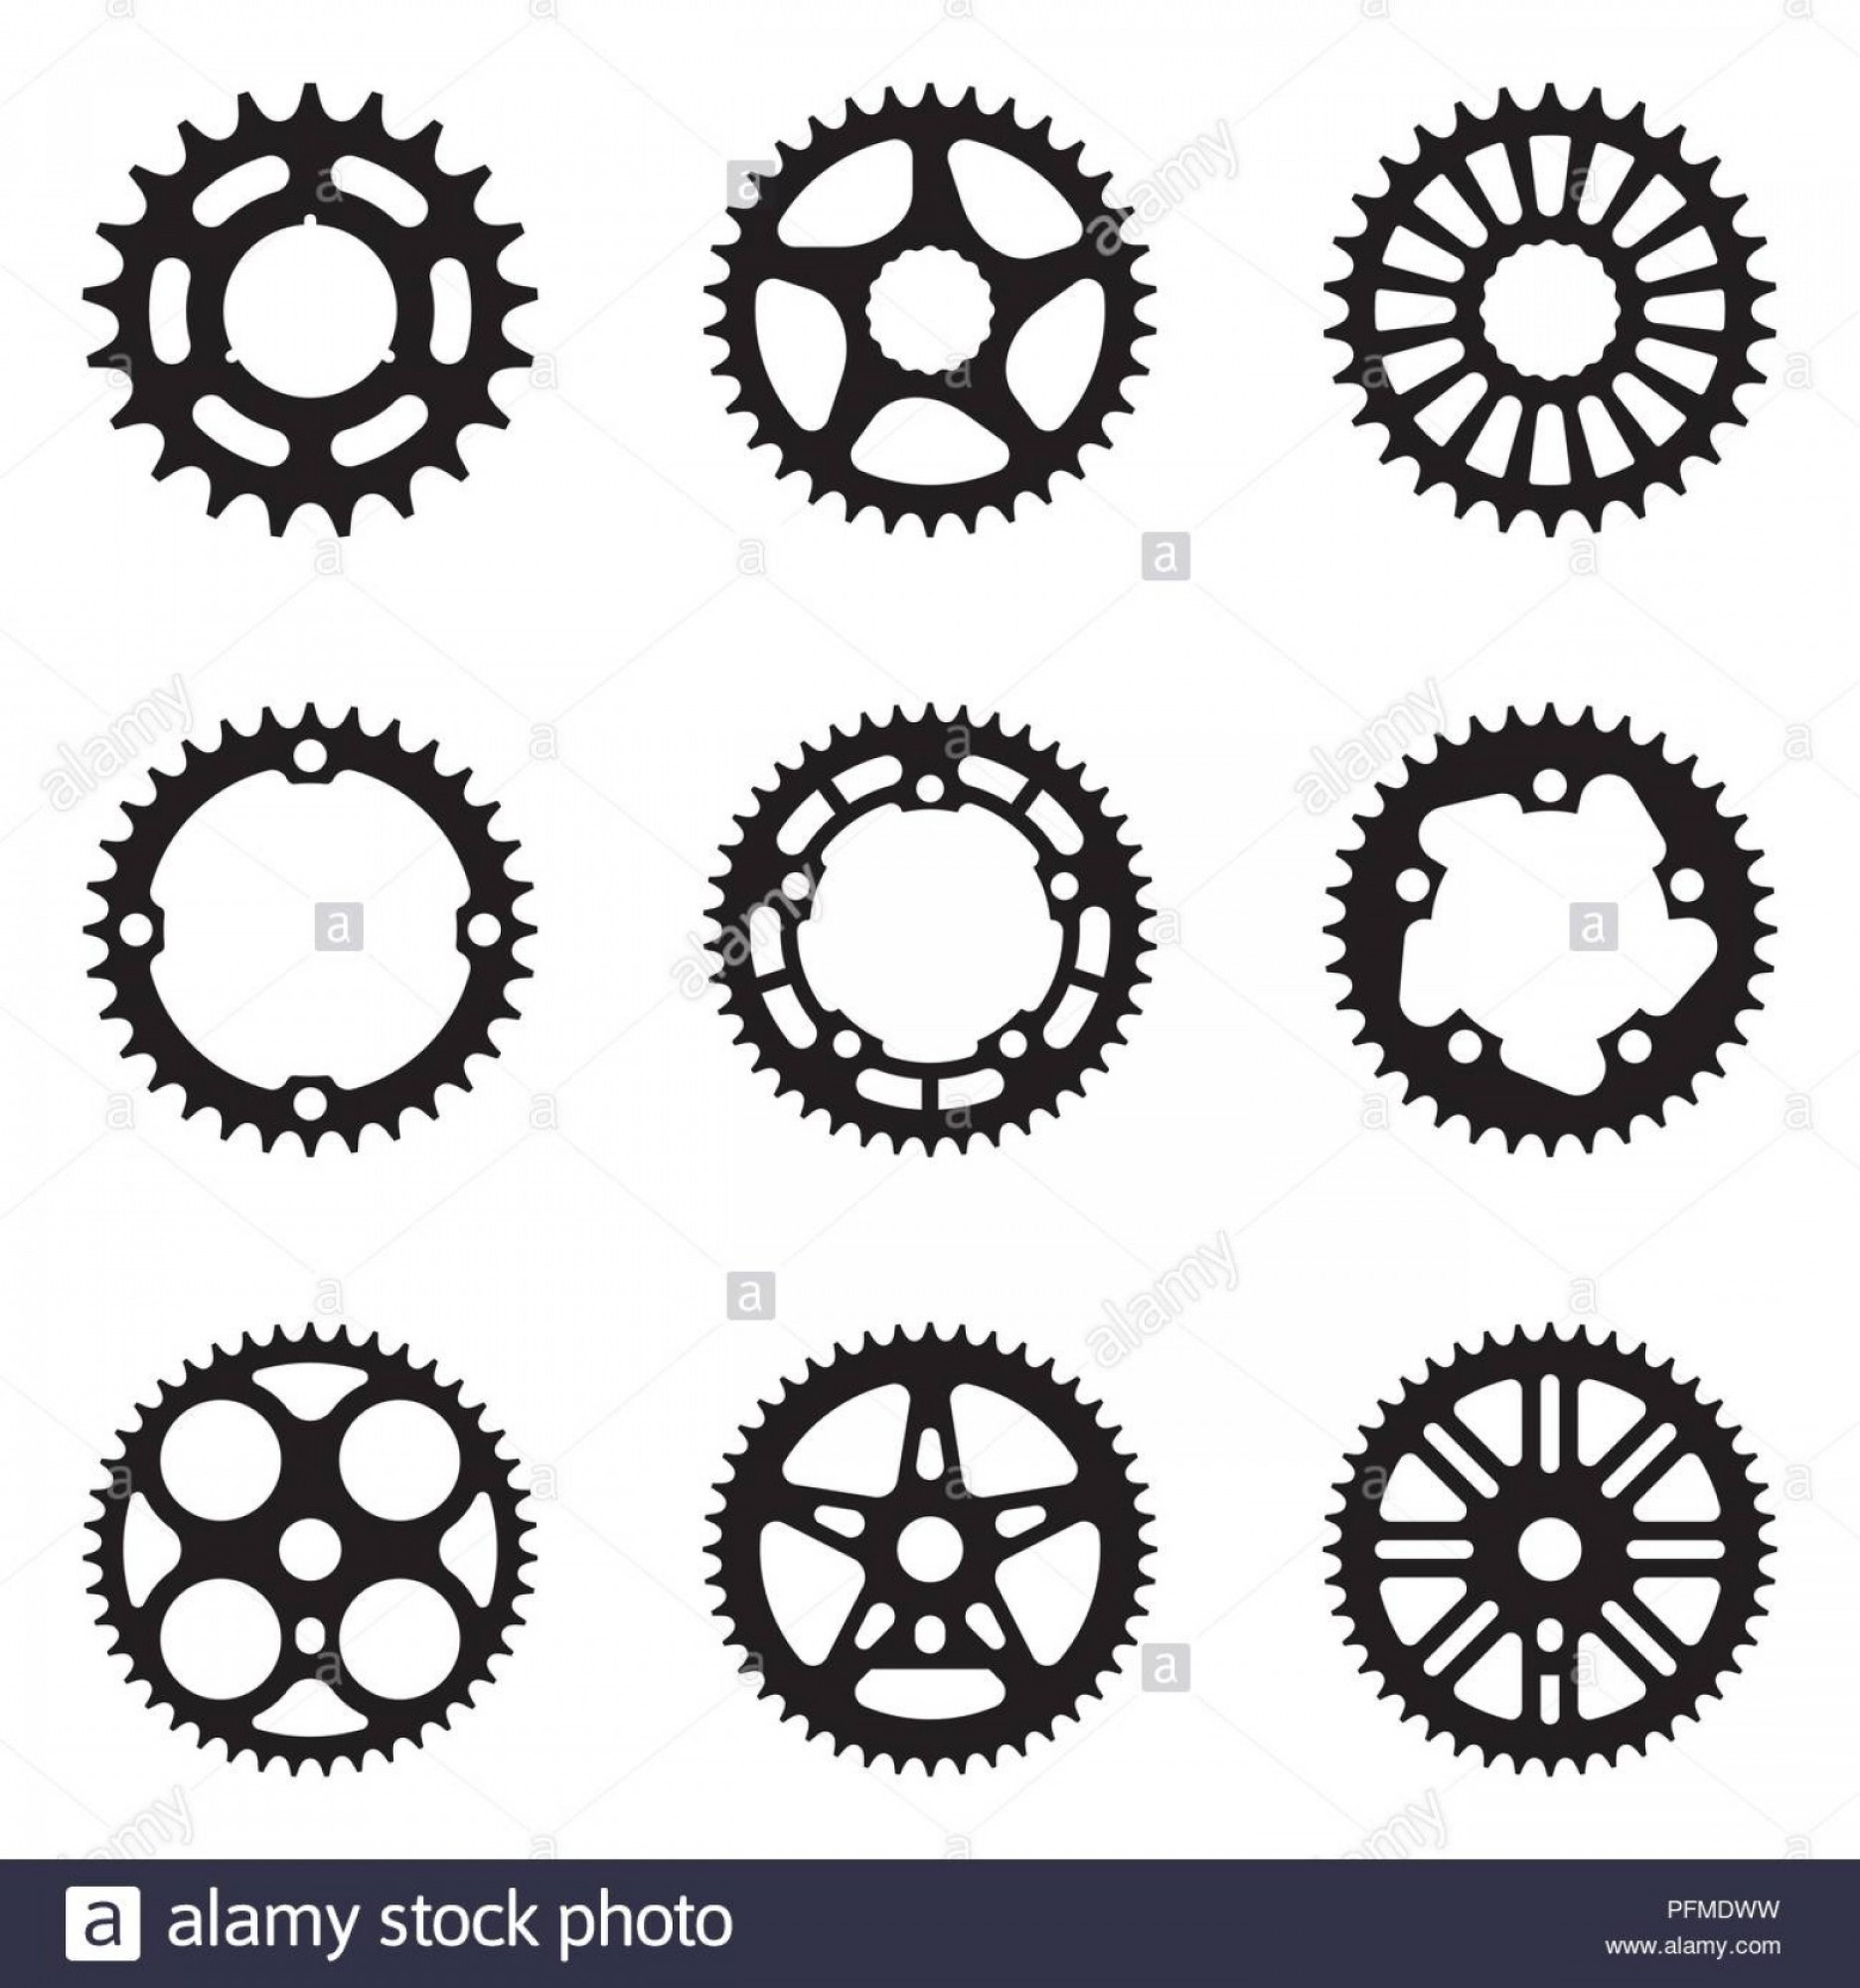 Bicycle Crank Vector Of Artwork: Sprocket Wheel Icon Set Bicycle Parts Silhouette Vector Image